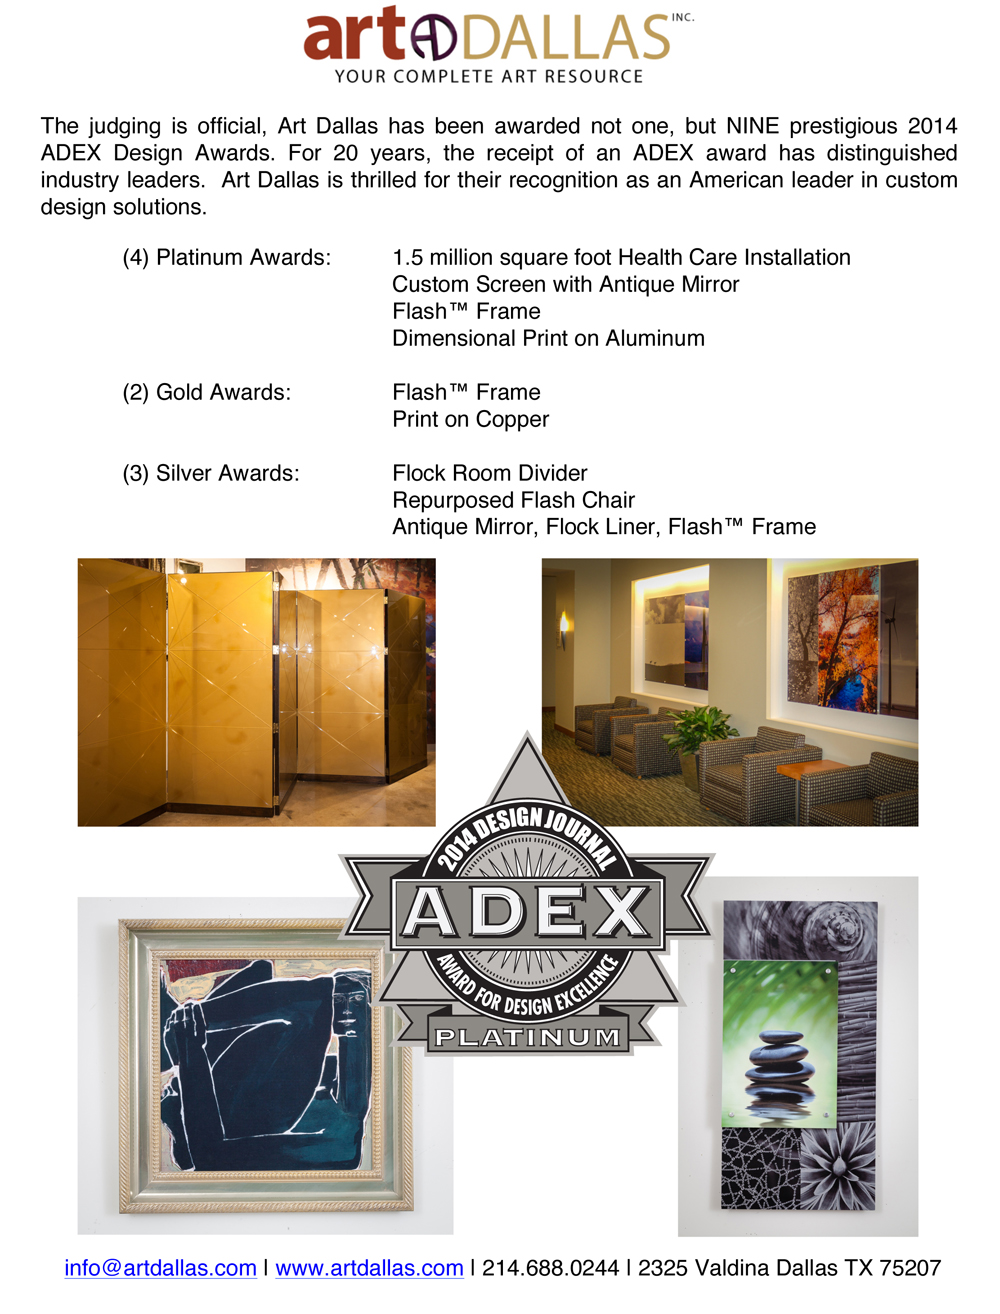 ADEX Award Tear Sheet